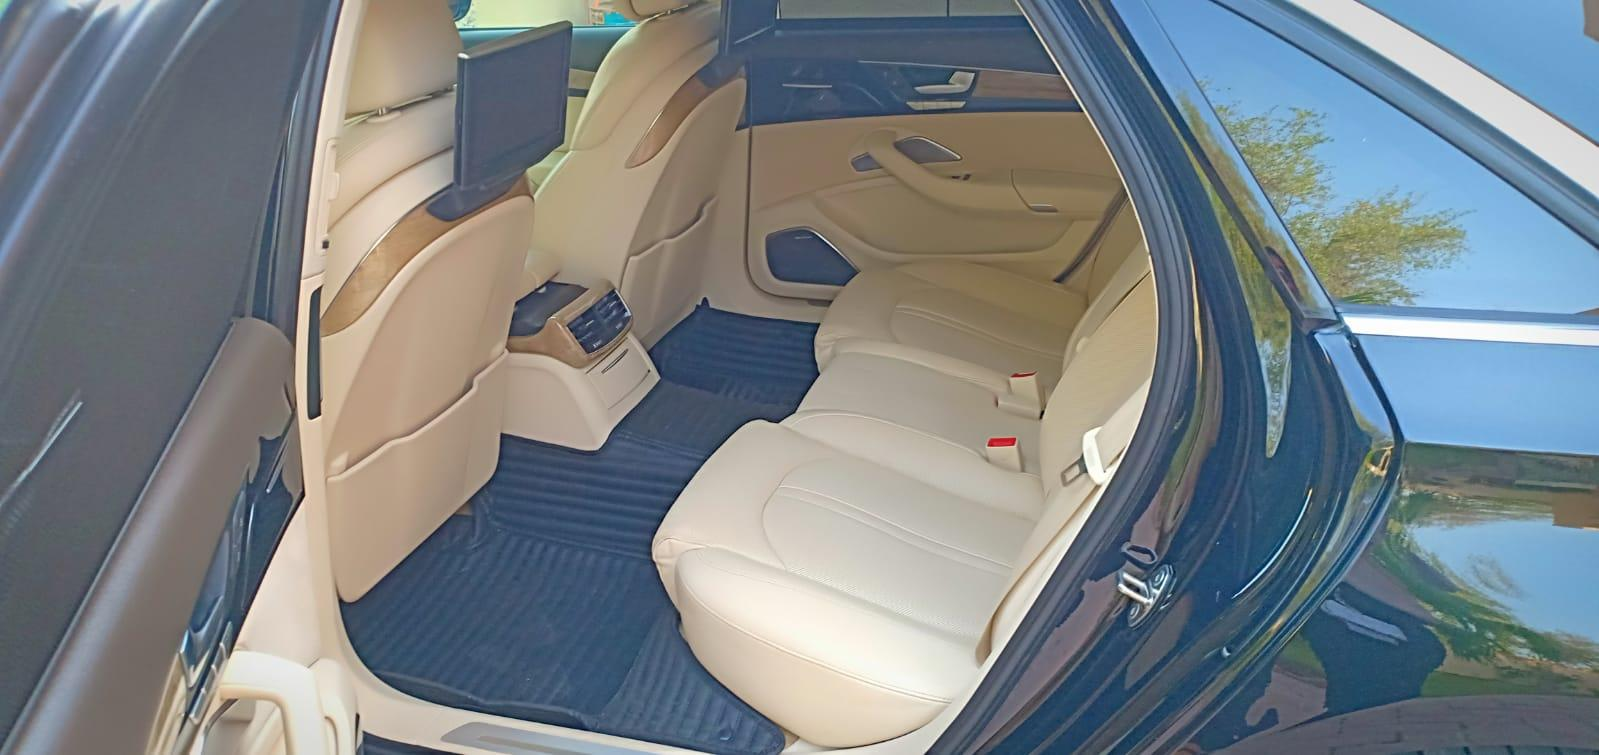 2011 AUDI A8L 4.2 V8 PURE LUXURY - BEST IN THE MAR